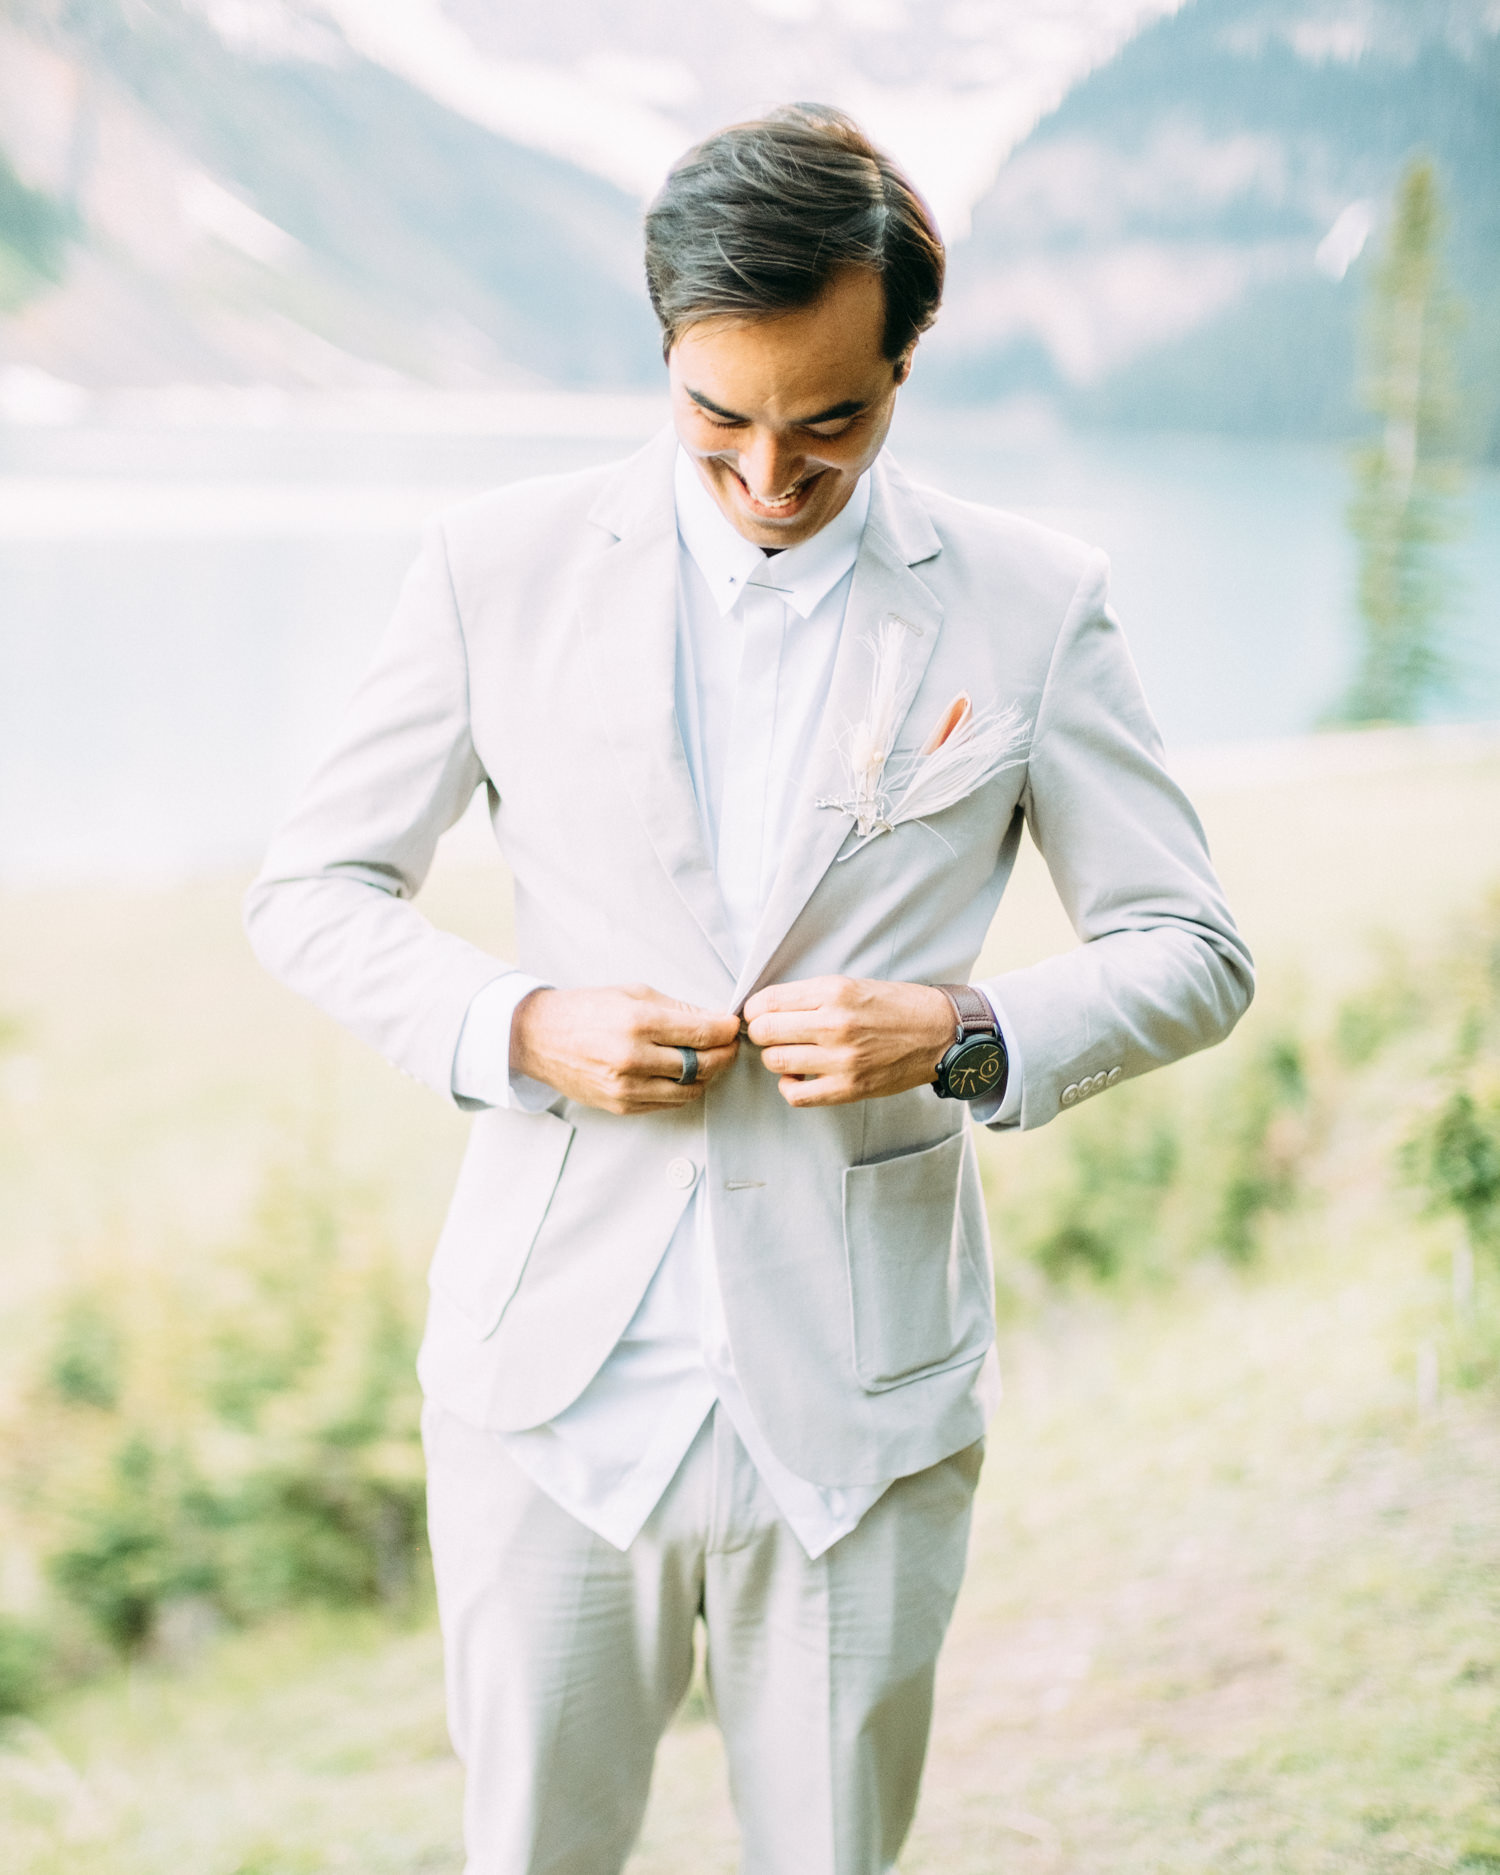 groom wearing gray suit and no tie